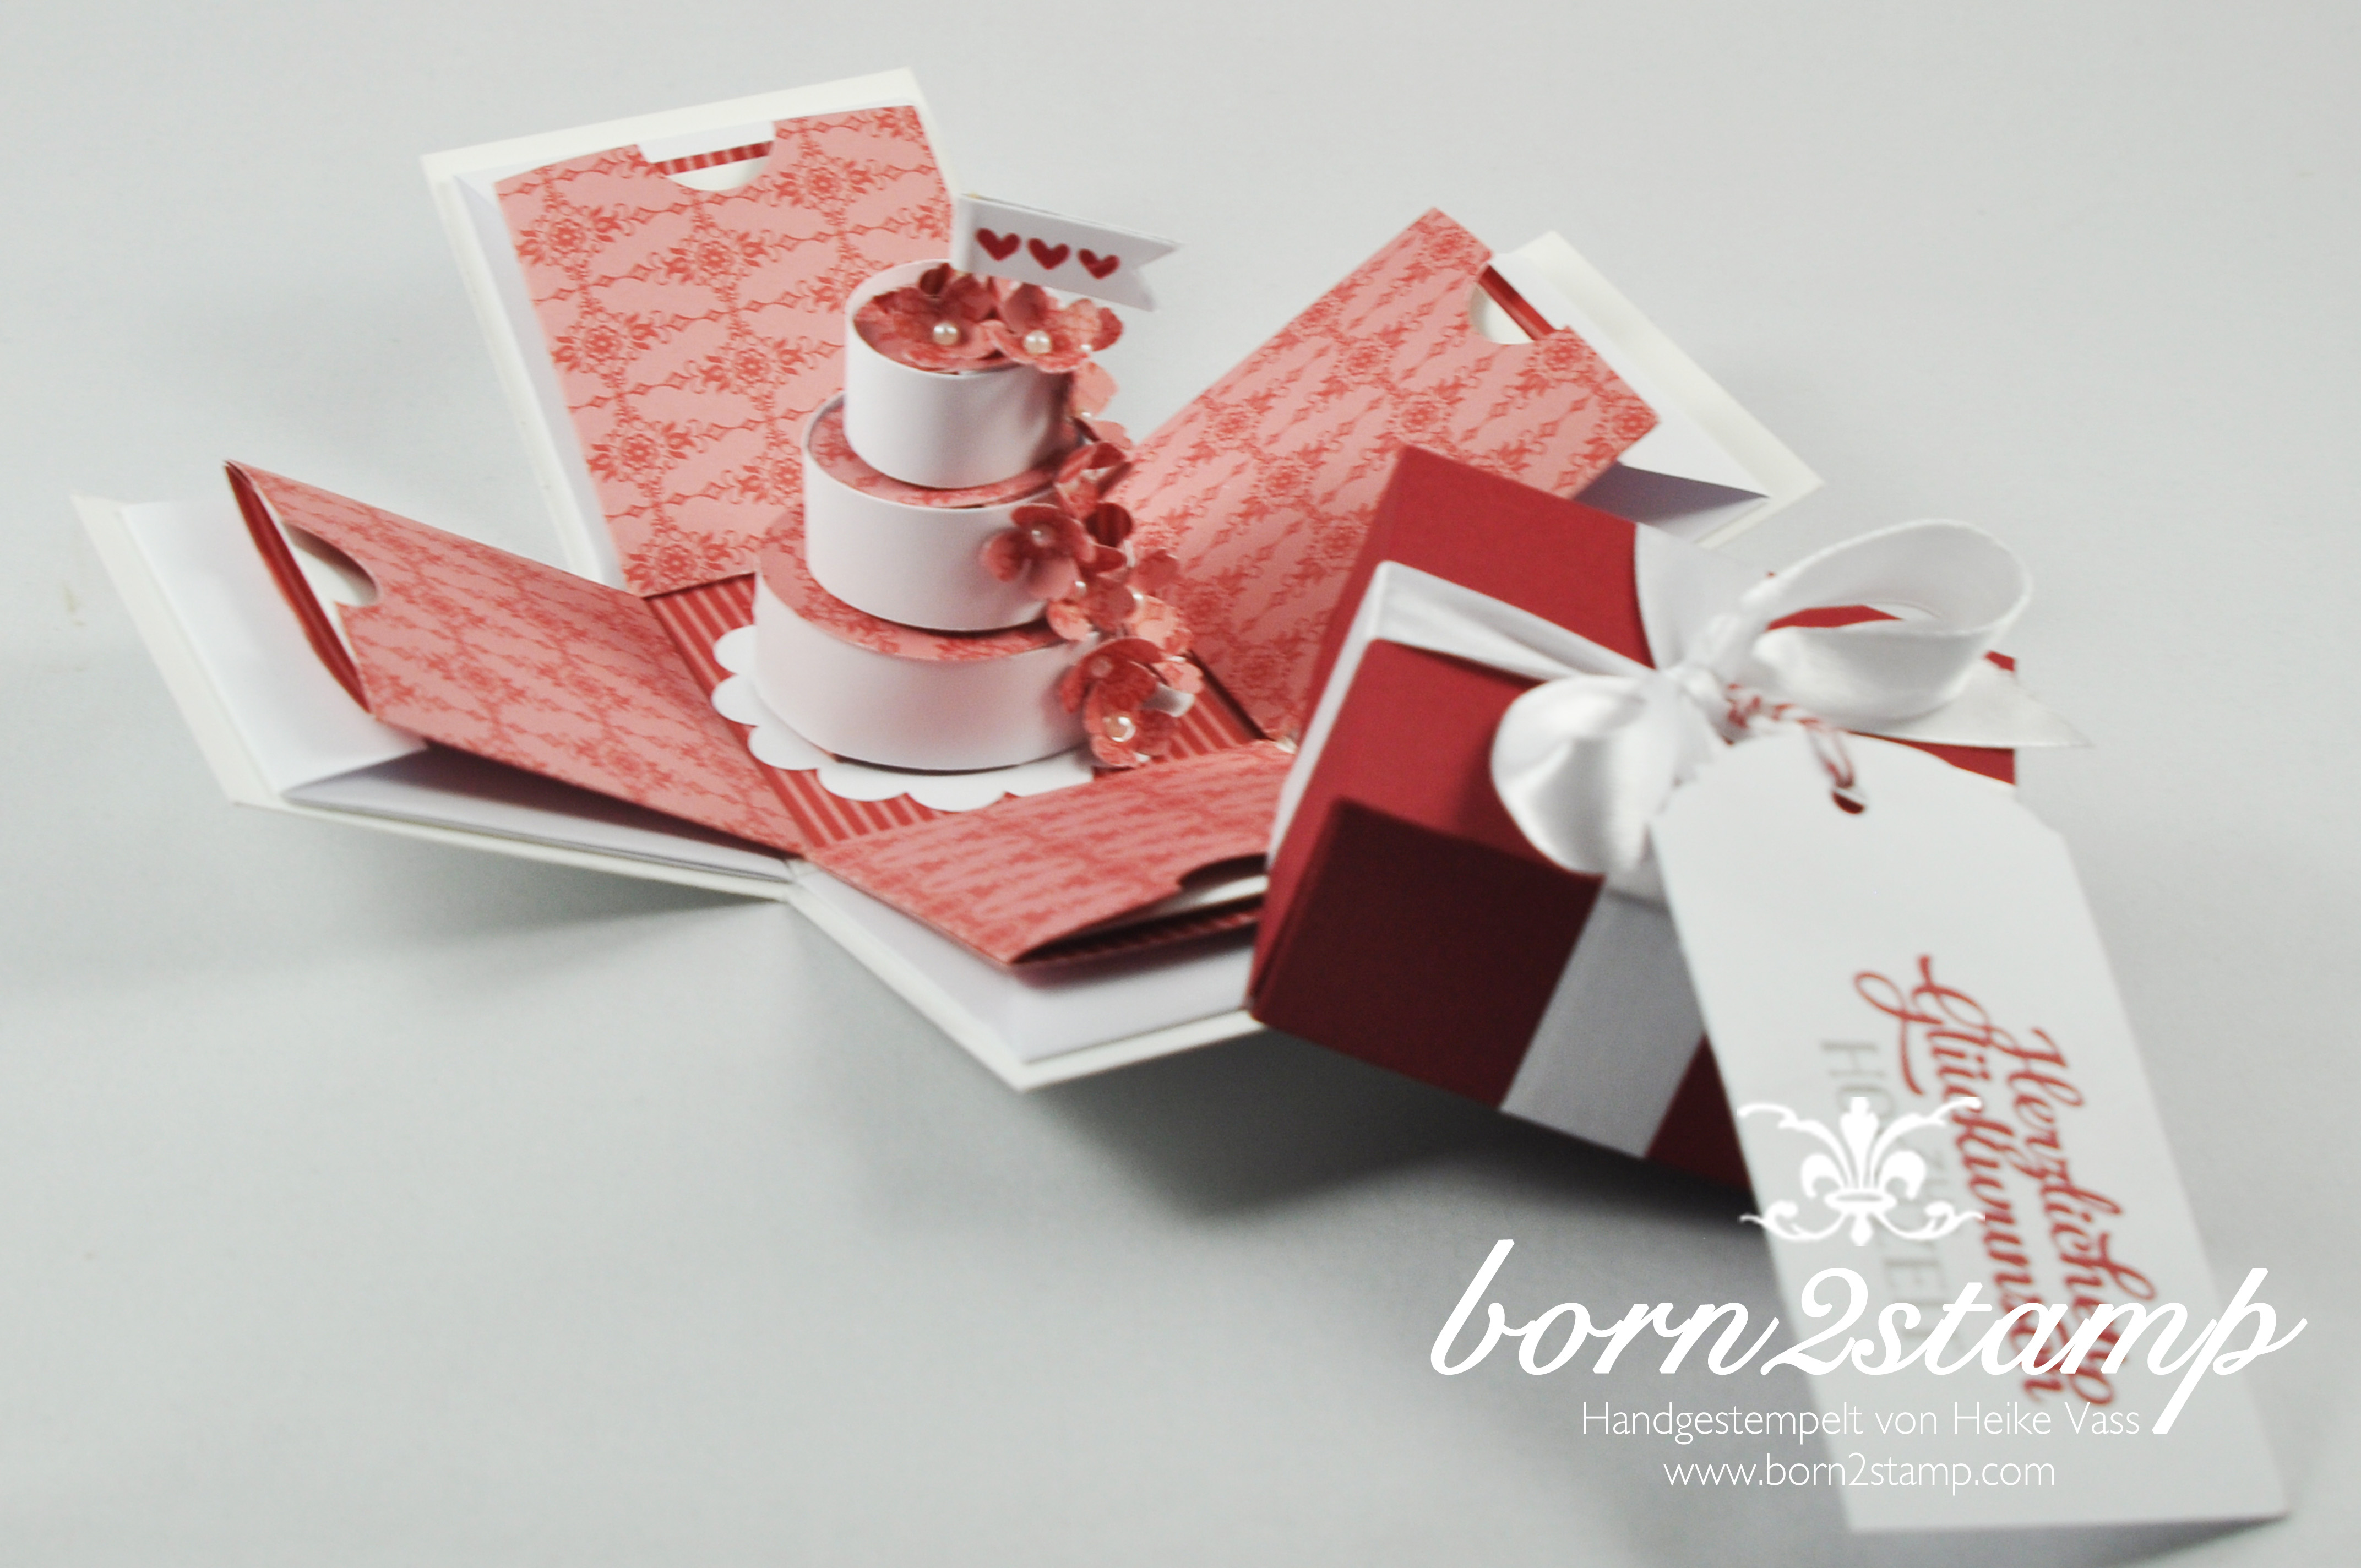 STAMPIN' UP! born2stamp Explosionsbox – Grusselemente 2